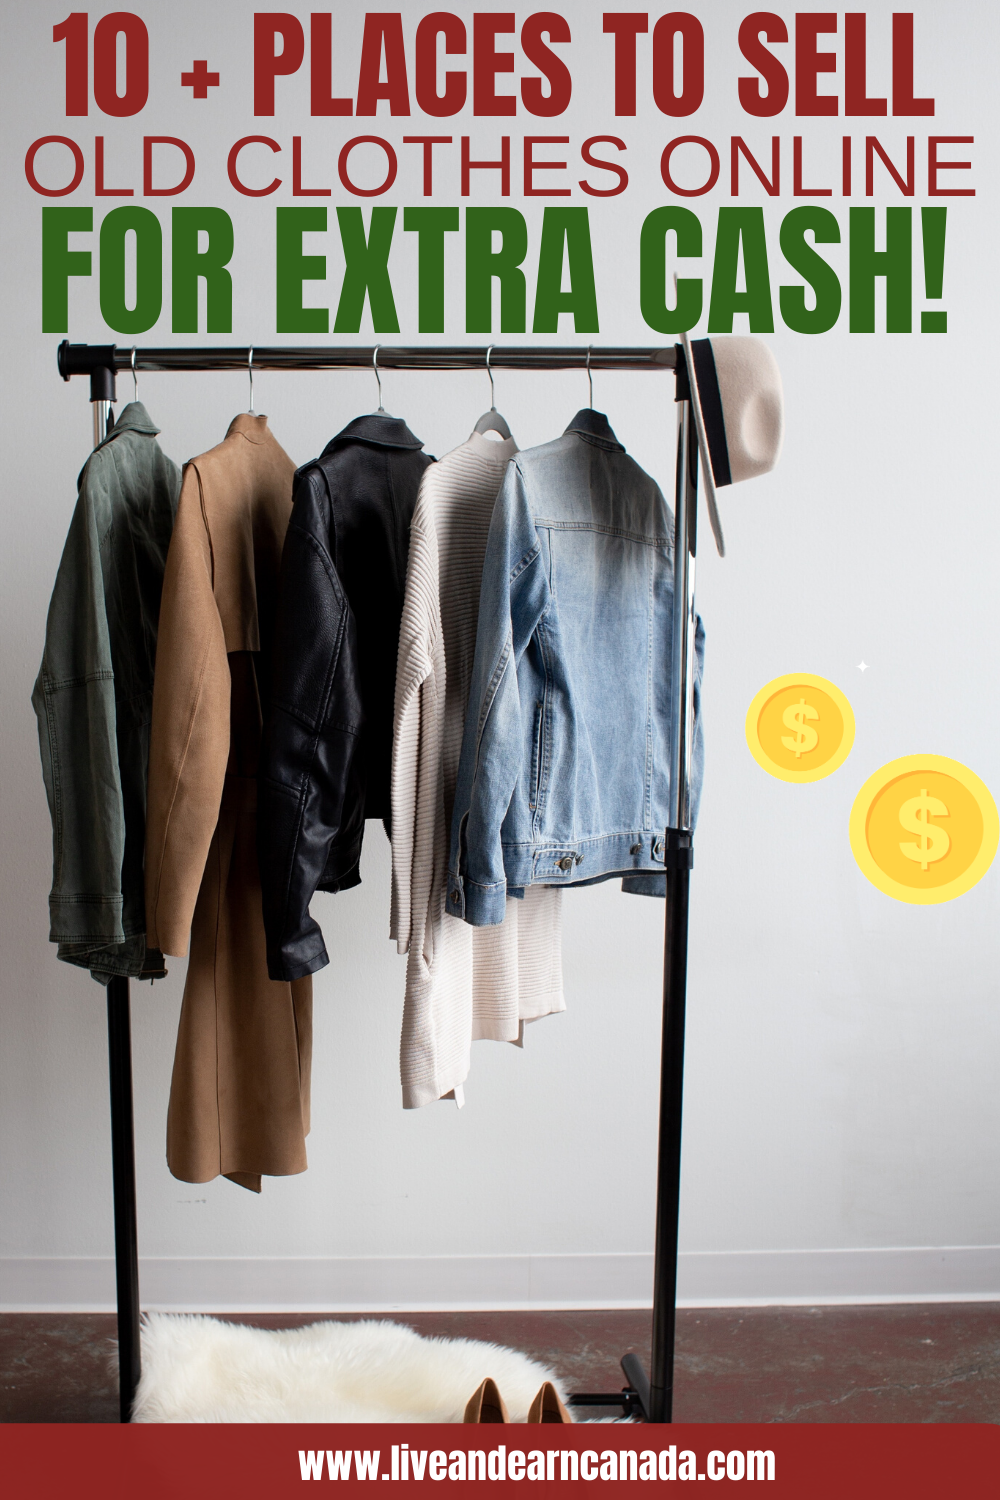 10 Fantastic Places To Sell Clothes Online For Cash Right Now In 2020 Selling Clothes Online Selling Clothes Online Clothing